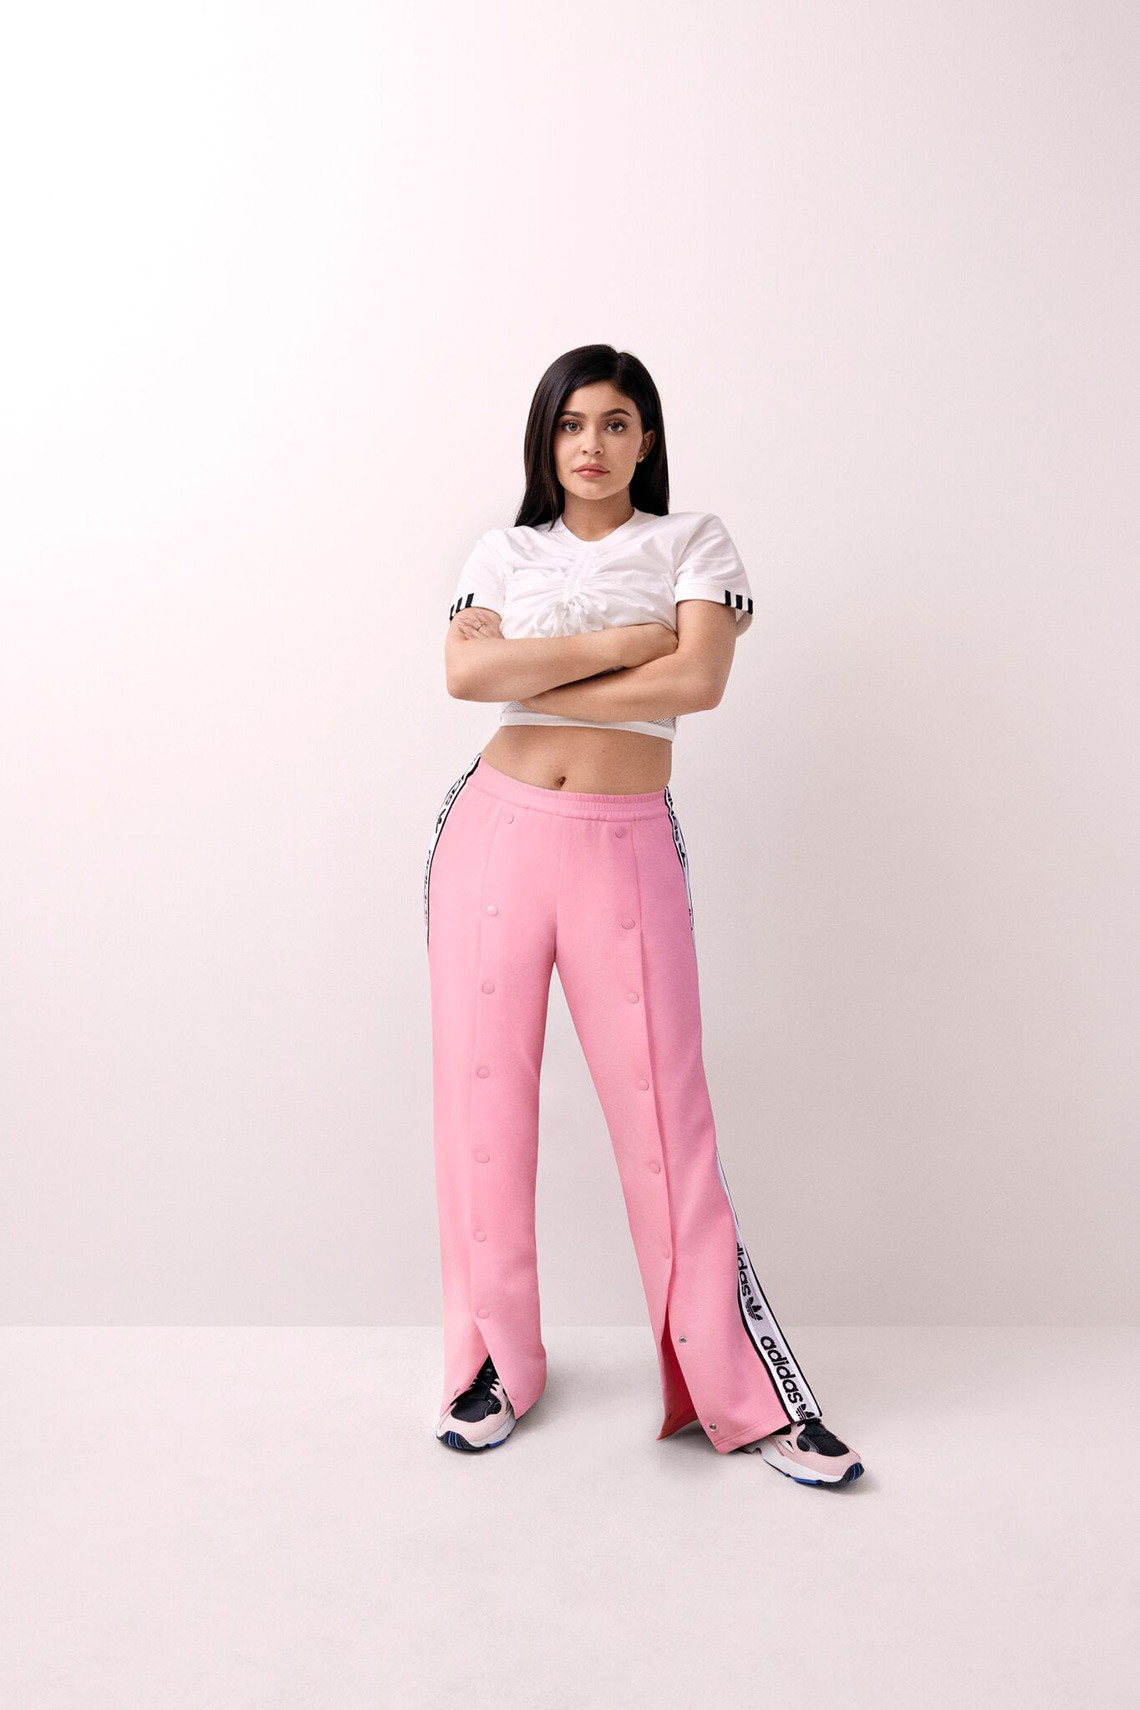 THE CUT | KYLIE JENNER ADIDAS FALCON AMBASSADOR